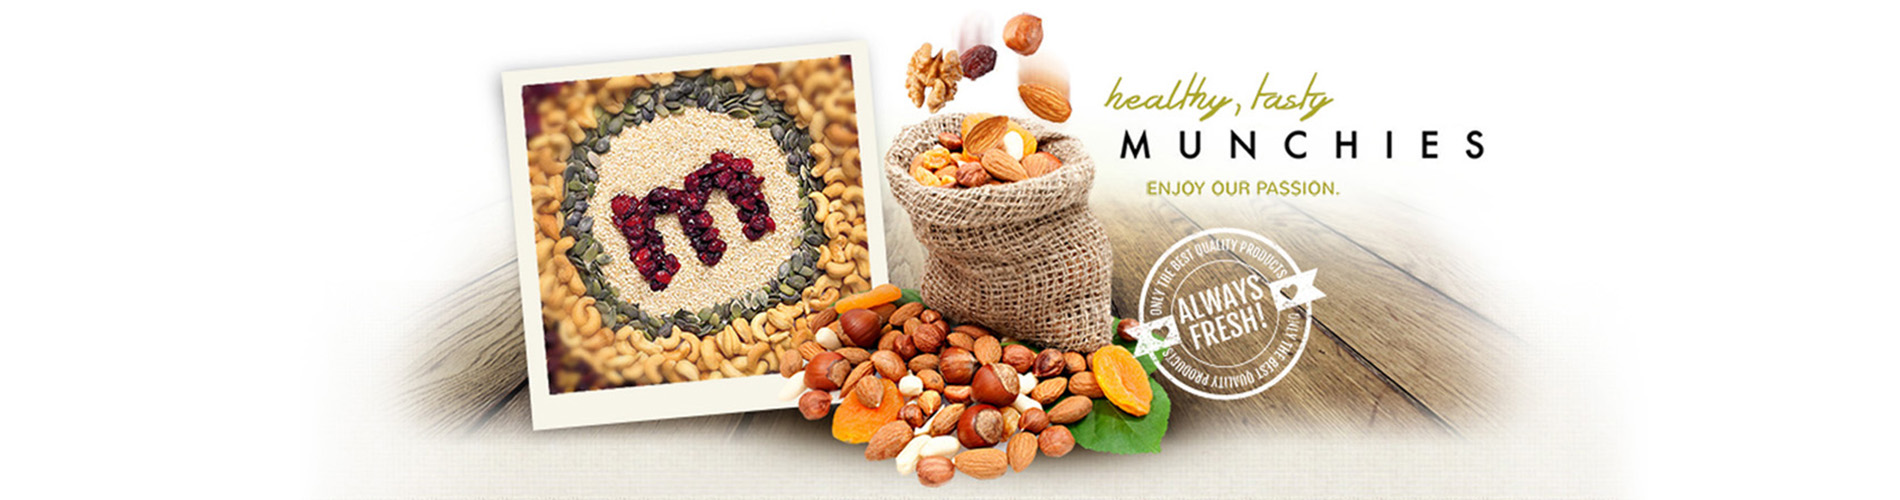 Manolis Munchies | Nuts, Dried Fruit, Seeds & Snacks| Shop